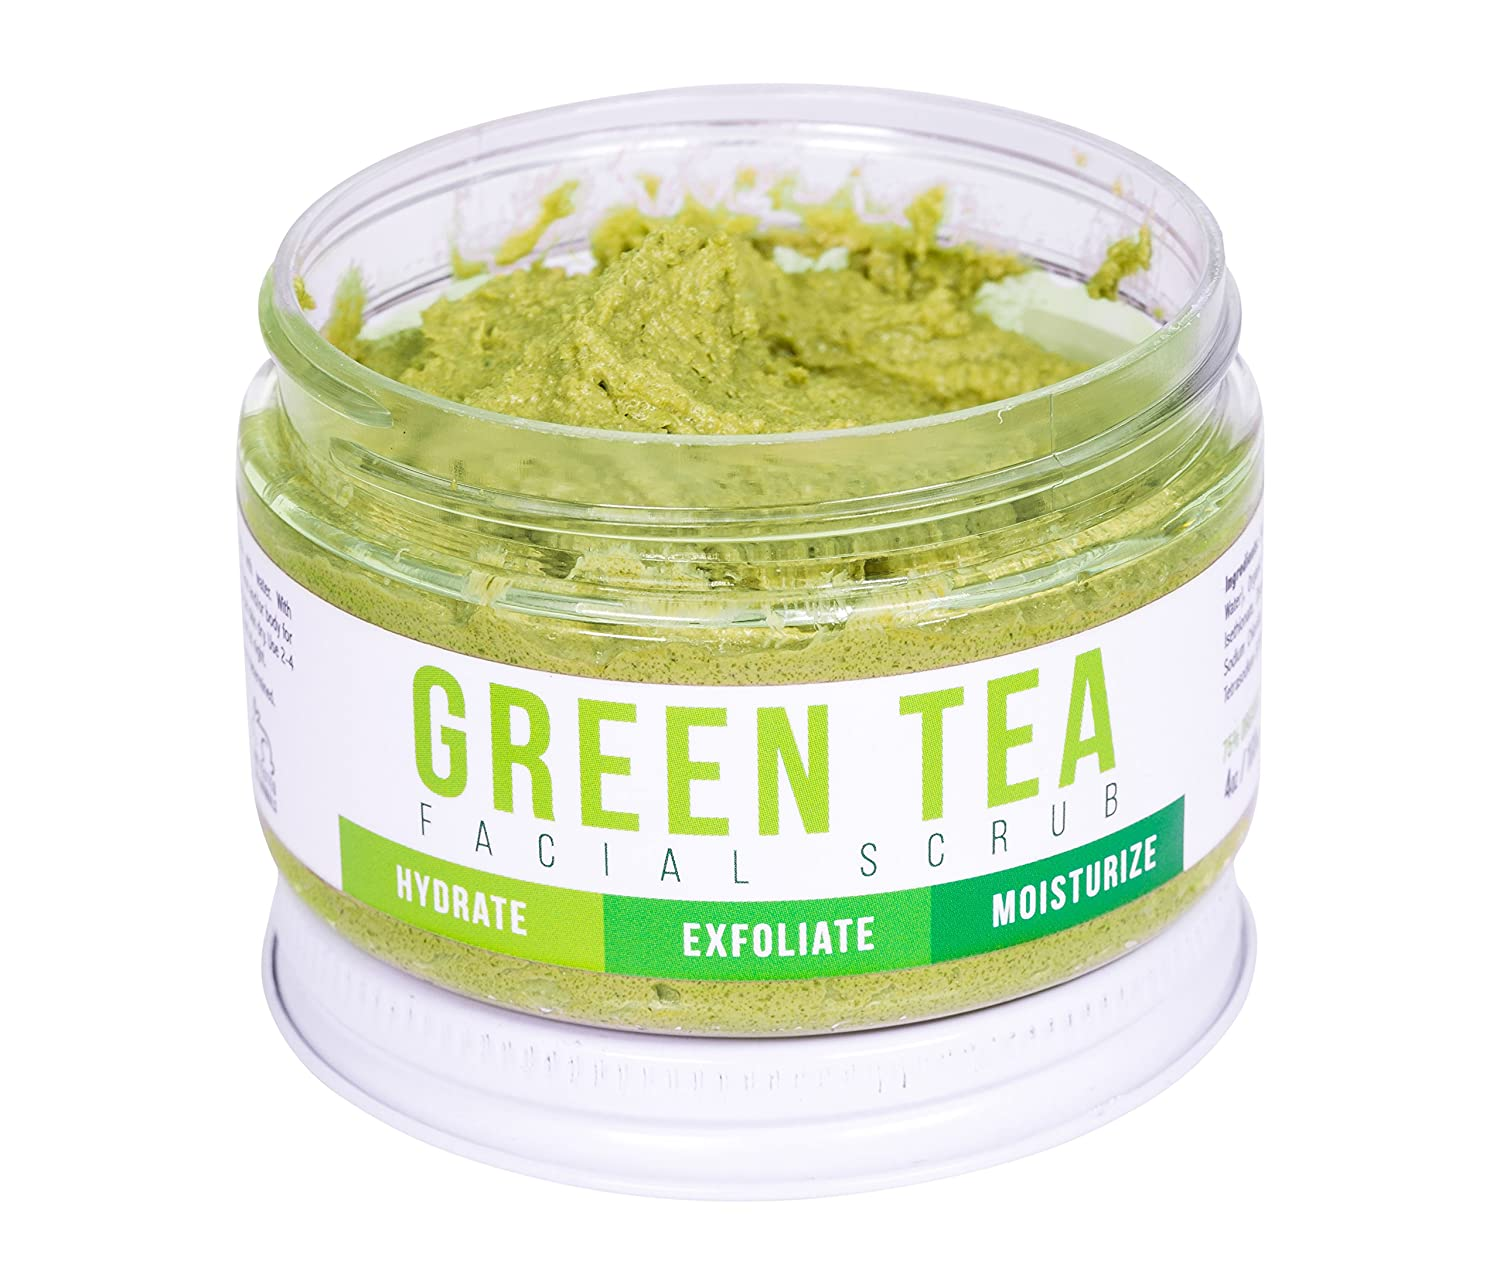 DETOX FACE SCRUB with Green Tea By Teami: Exfoliate, Hydrate, and Moisturize All Skin Types. Our Best Facial Scrubs with Organic Lemongrass for Blemishes & Exfoliating Sugar for Blackheads Teami Blends